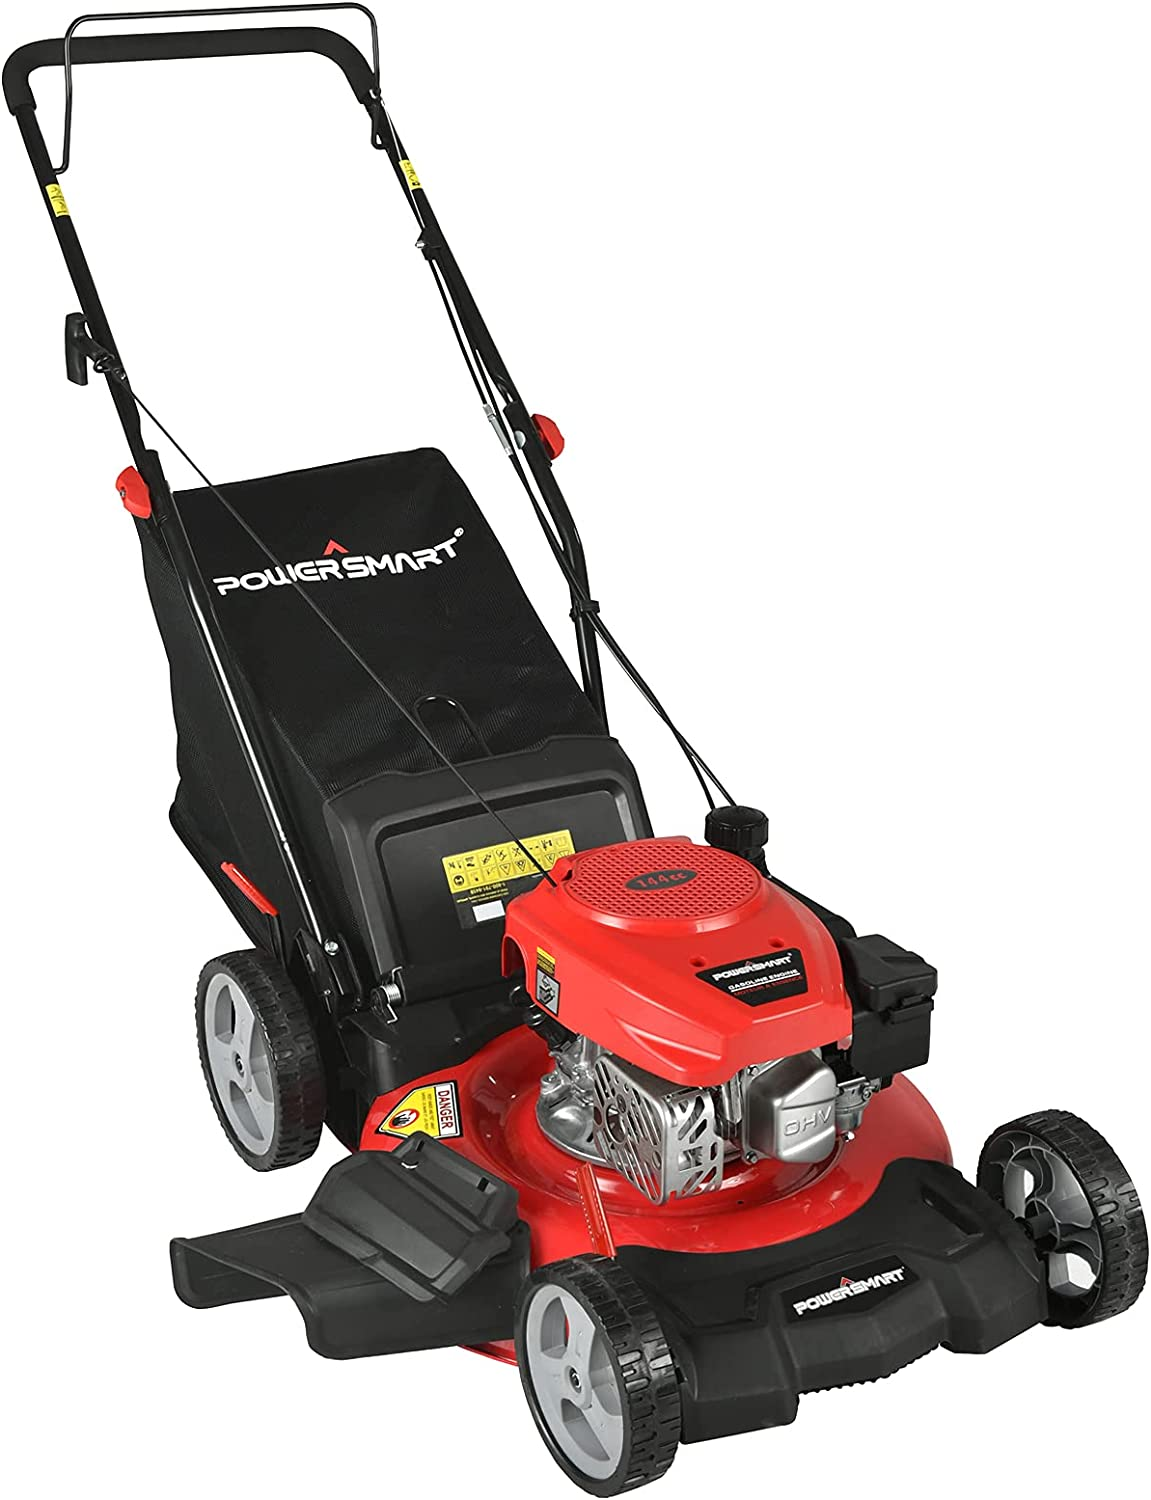 PowerSmart Push Lawn Wholesale Mower Gas NEW before selling ☆ Powered Inch 21 3-in-1 - Law